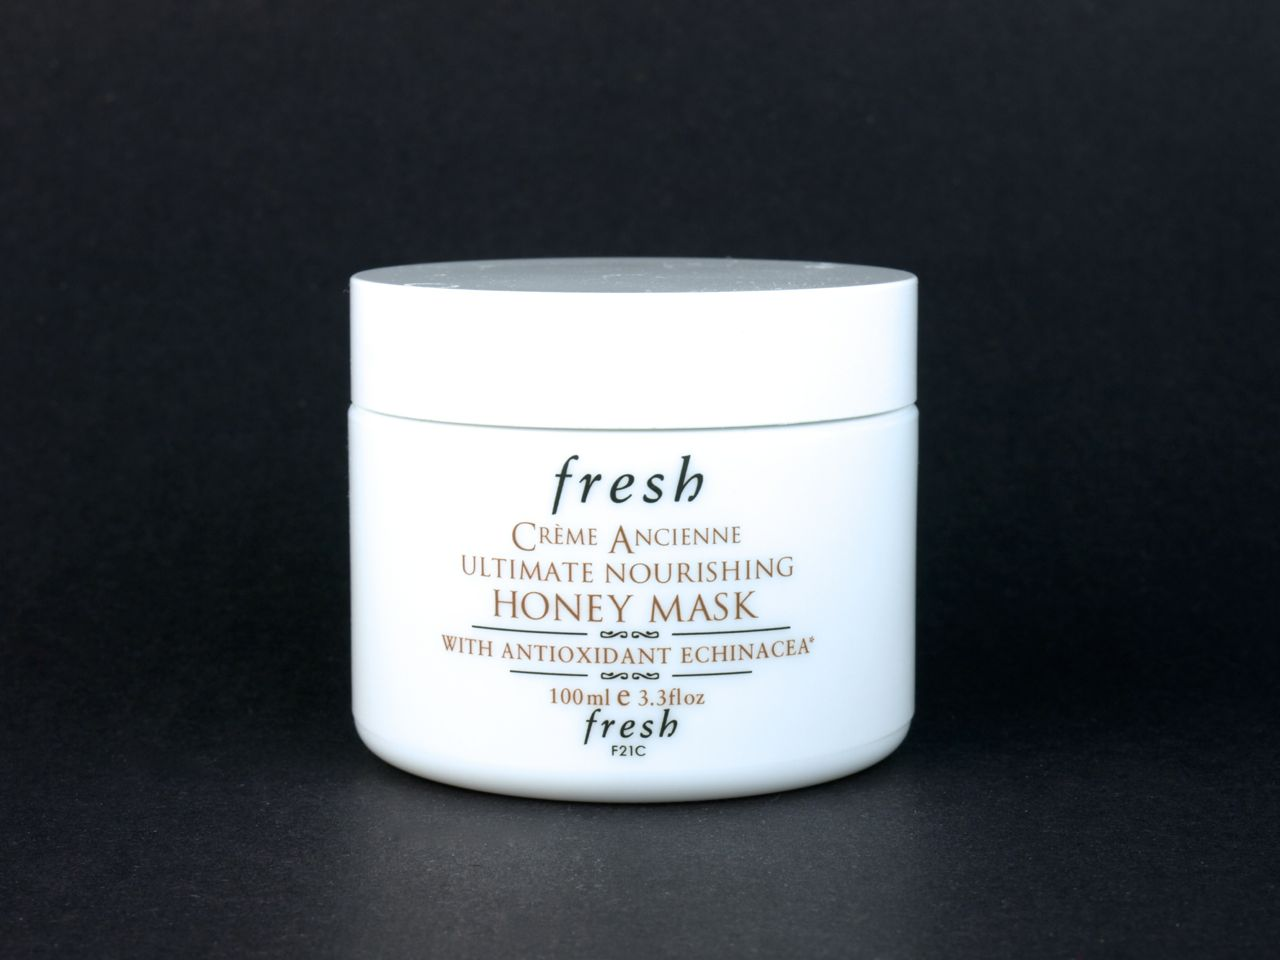 The One Thing: Fresh Creme Ancienne Ultimate Nourishing HoneyMask The One Thing: Fresh Creme Ancienne Ultimate Nourishing HoneyMask new images